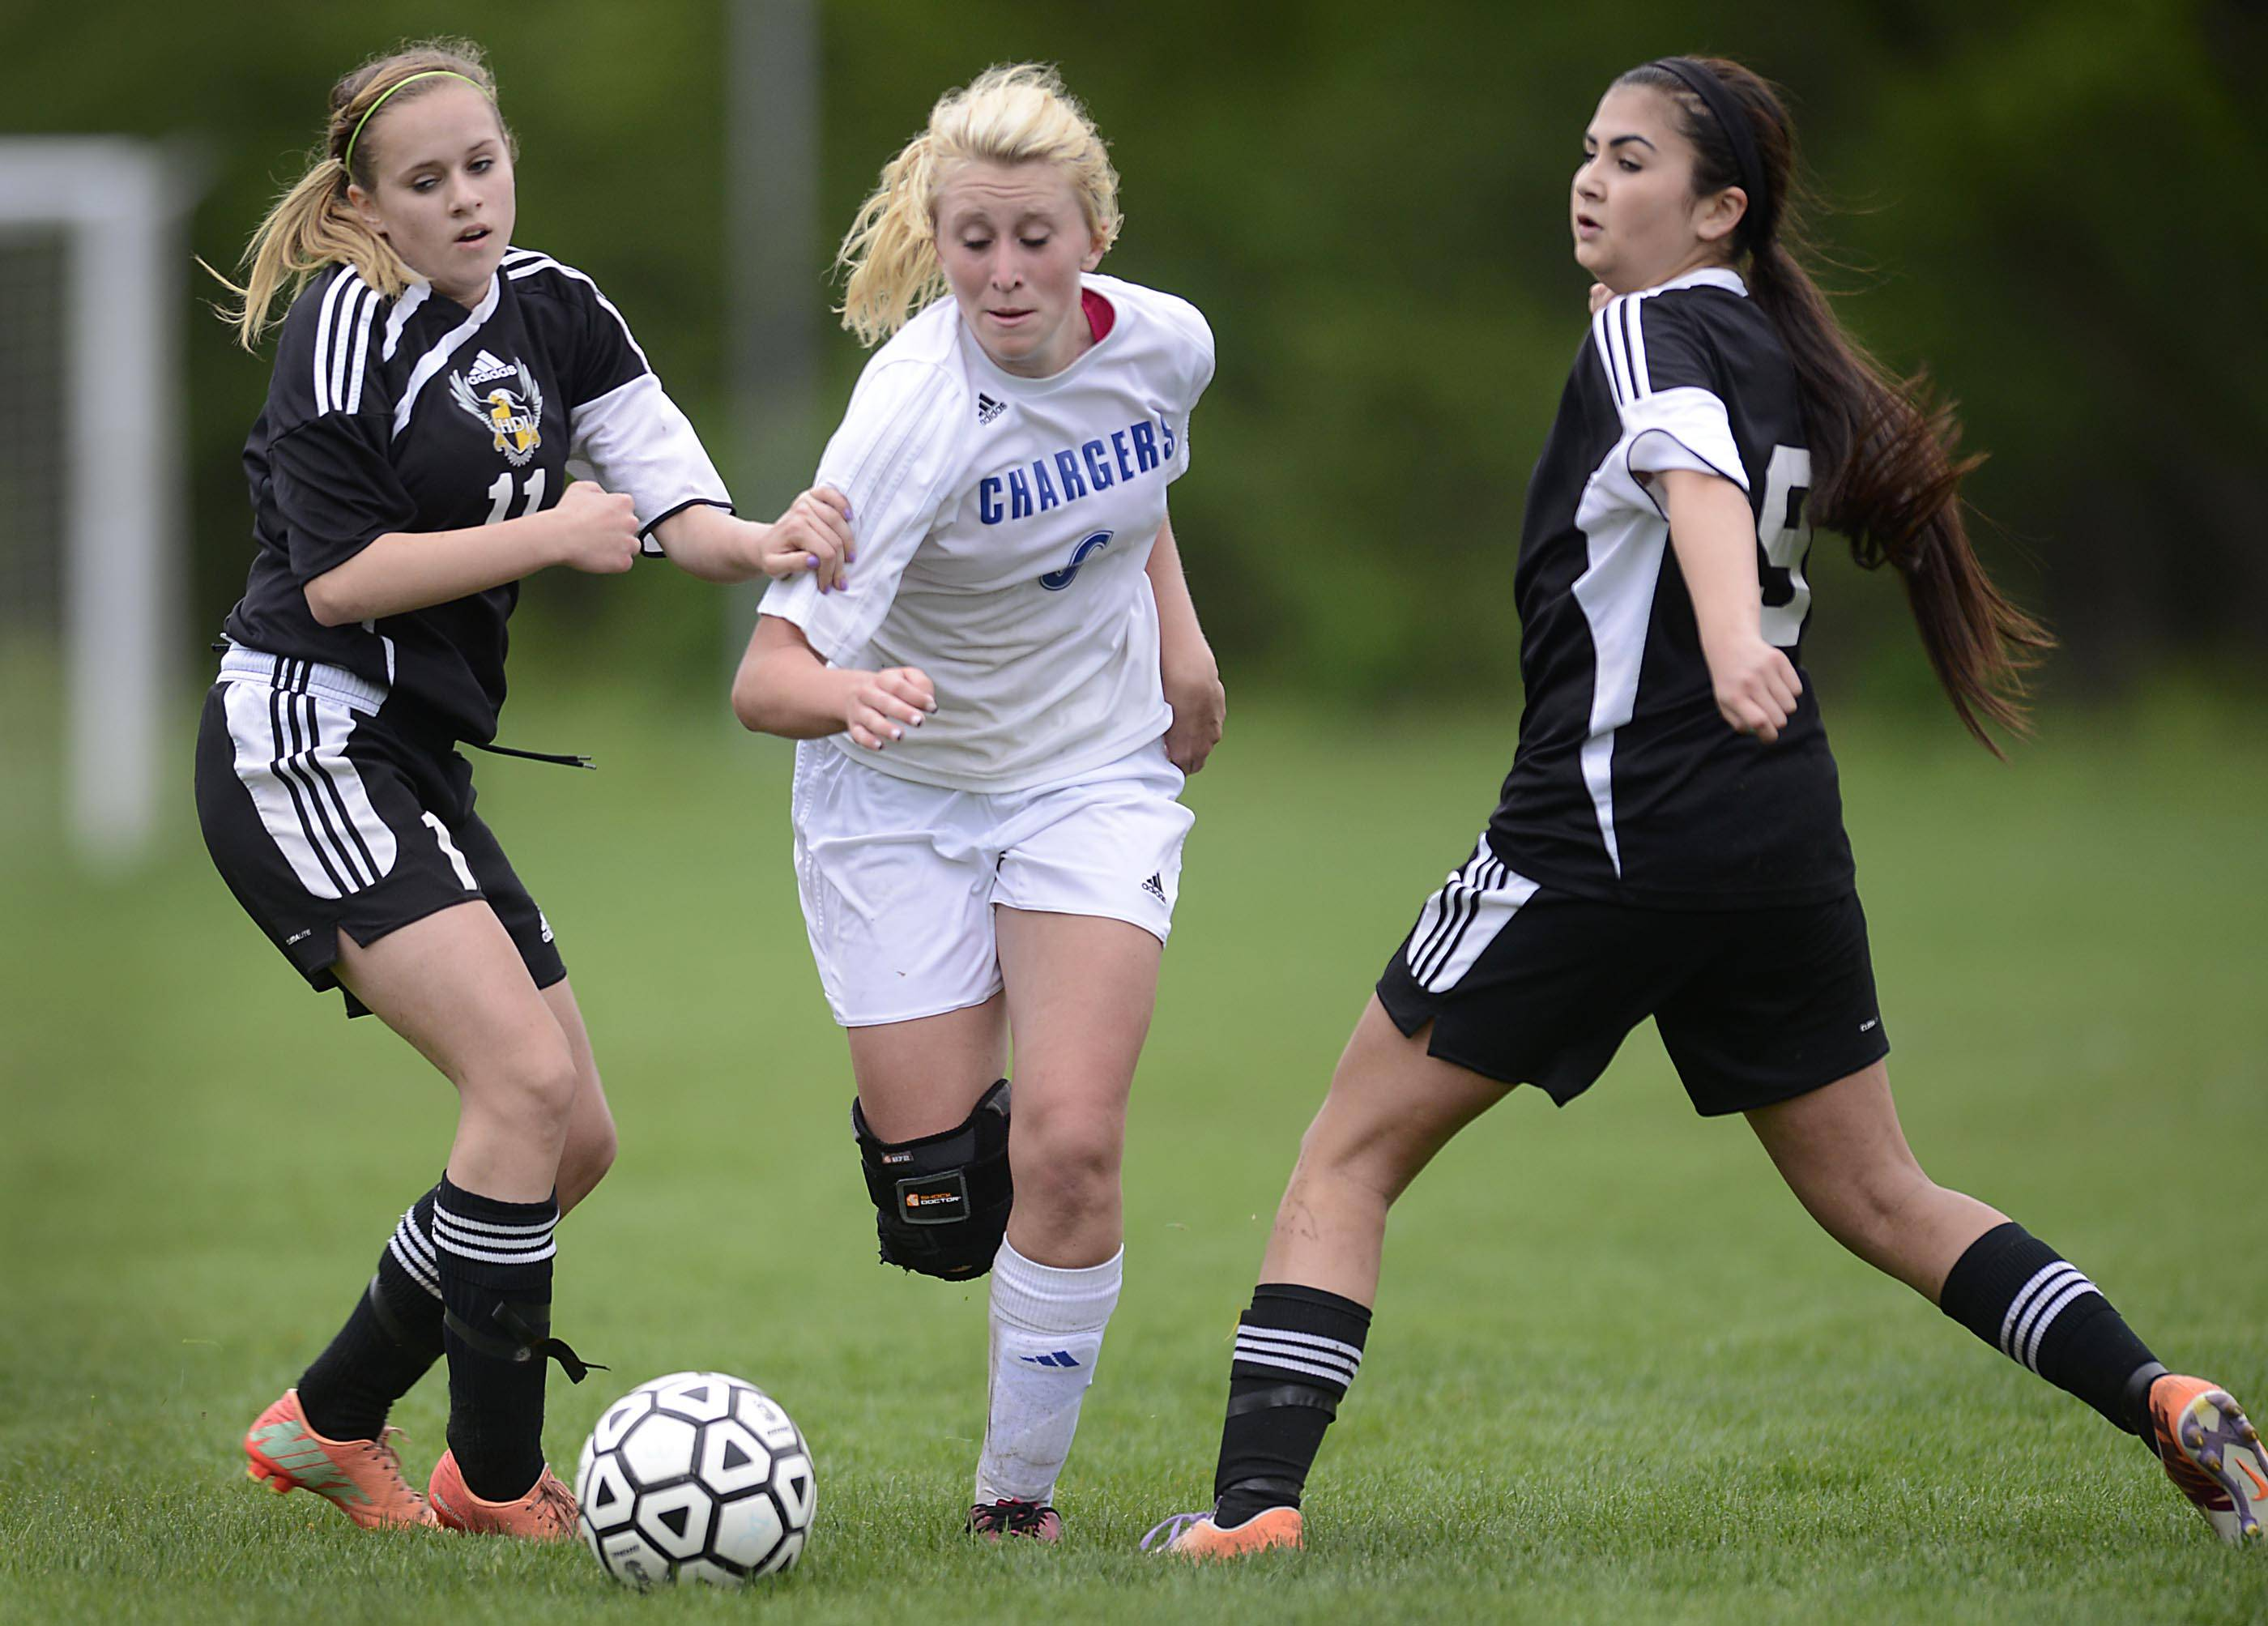 Dundee-Crown's Shannon Feld dribbles between the defense of Jacobs' Kyra Blankenship and Amanda Pasetes, right, Tuesday in Carpentersville.